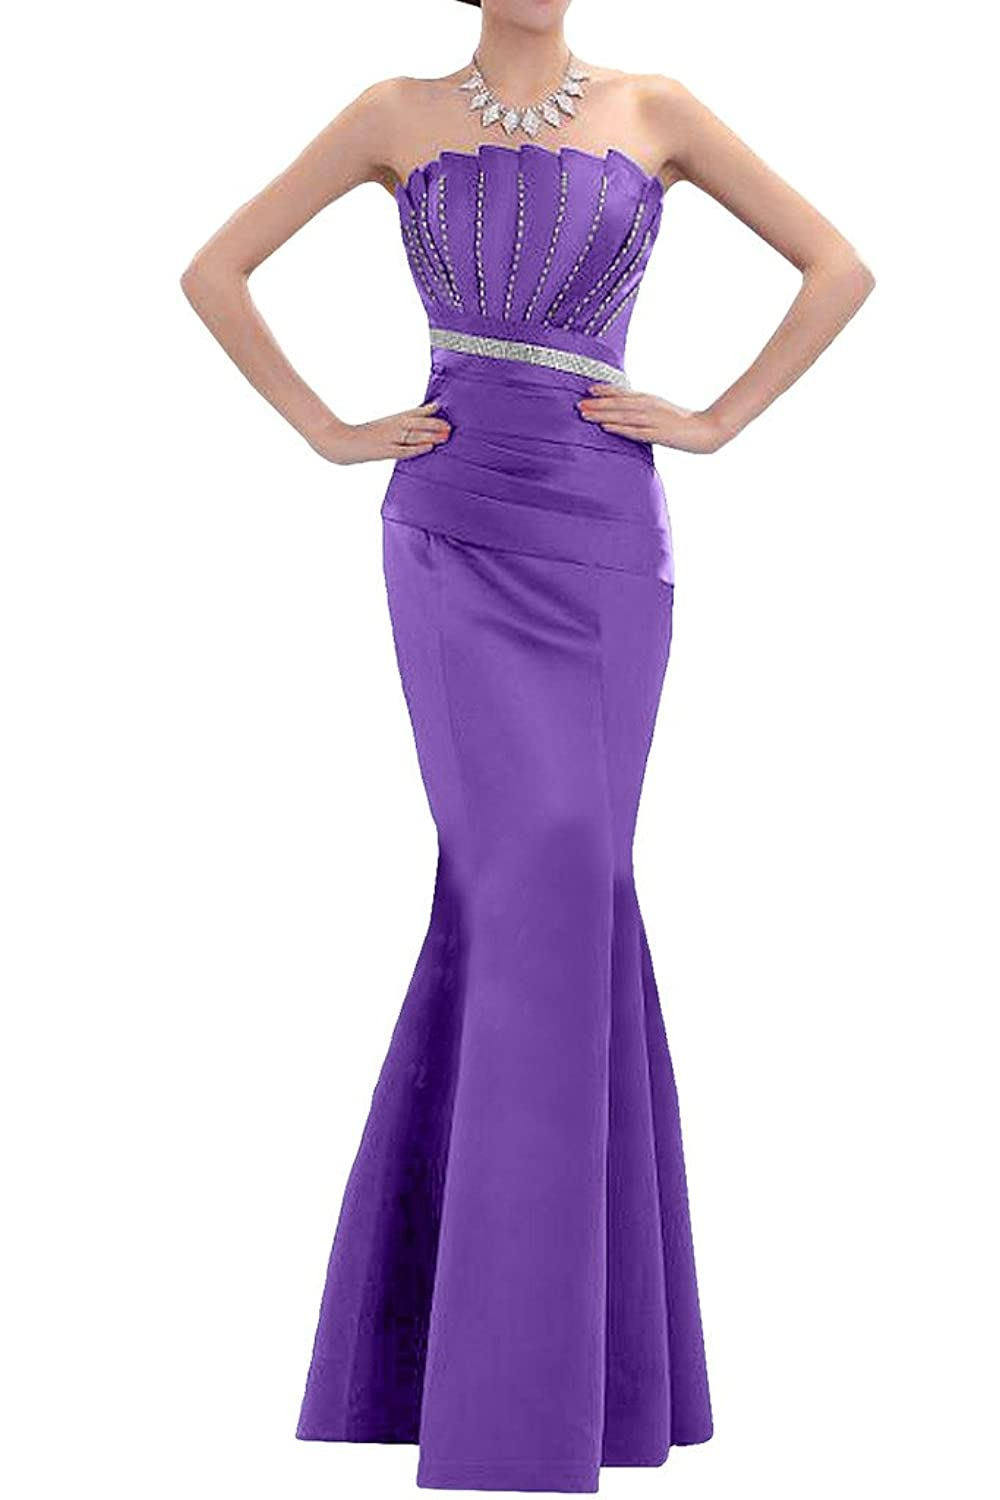 Gorgeous Bride Long Exquisite Satin Party Evening Gown Formal Occasion